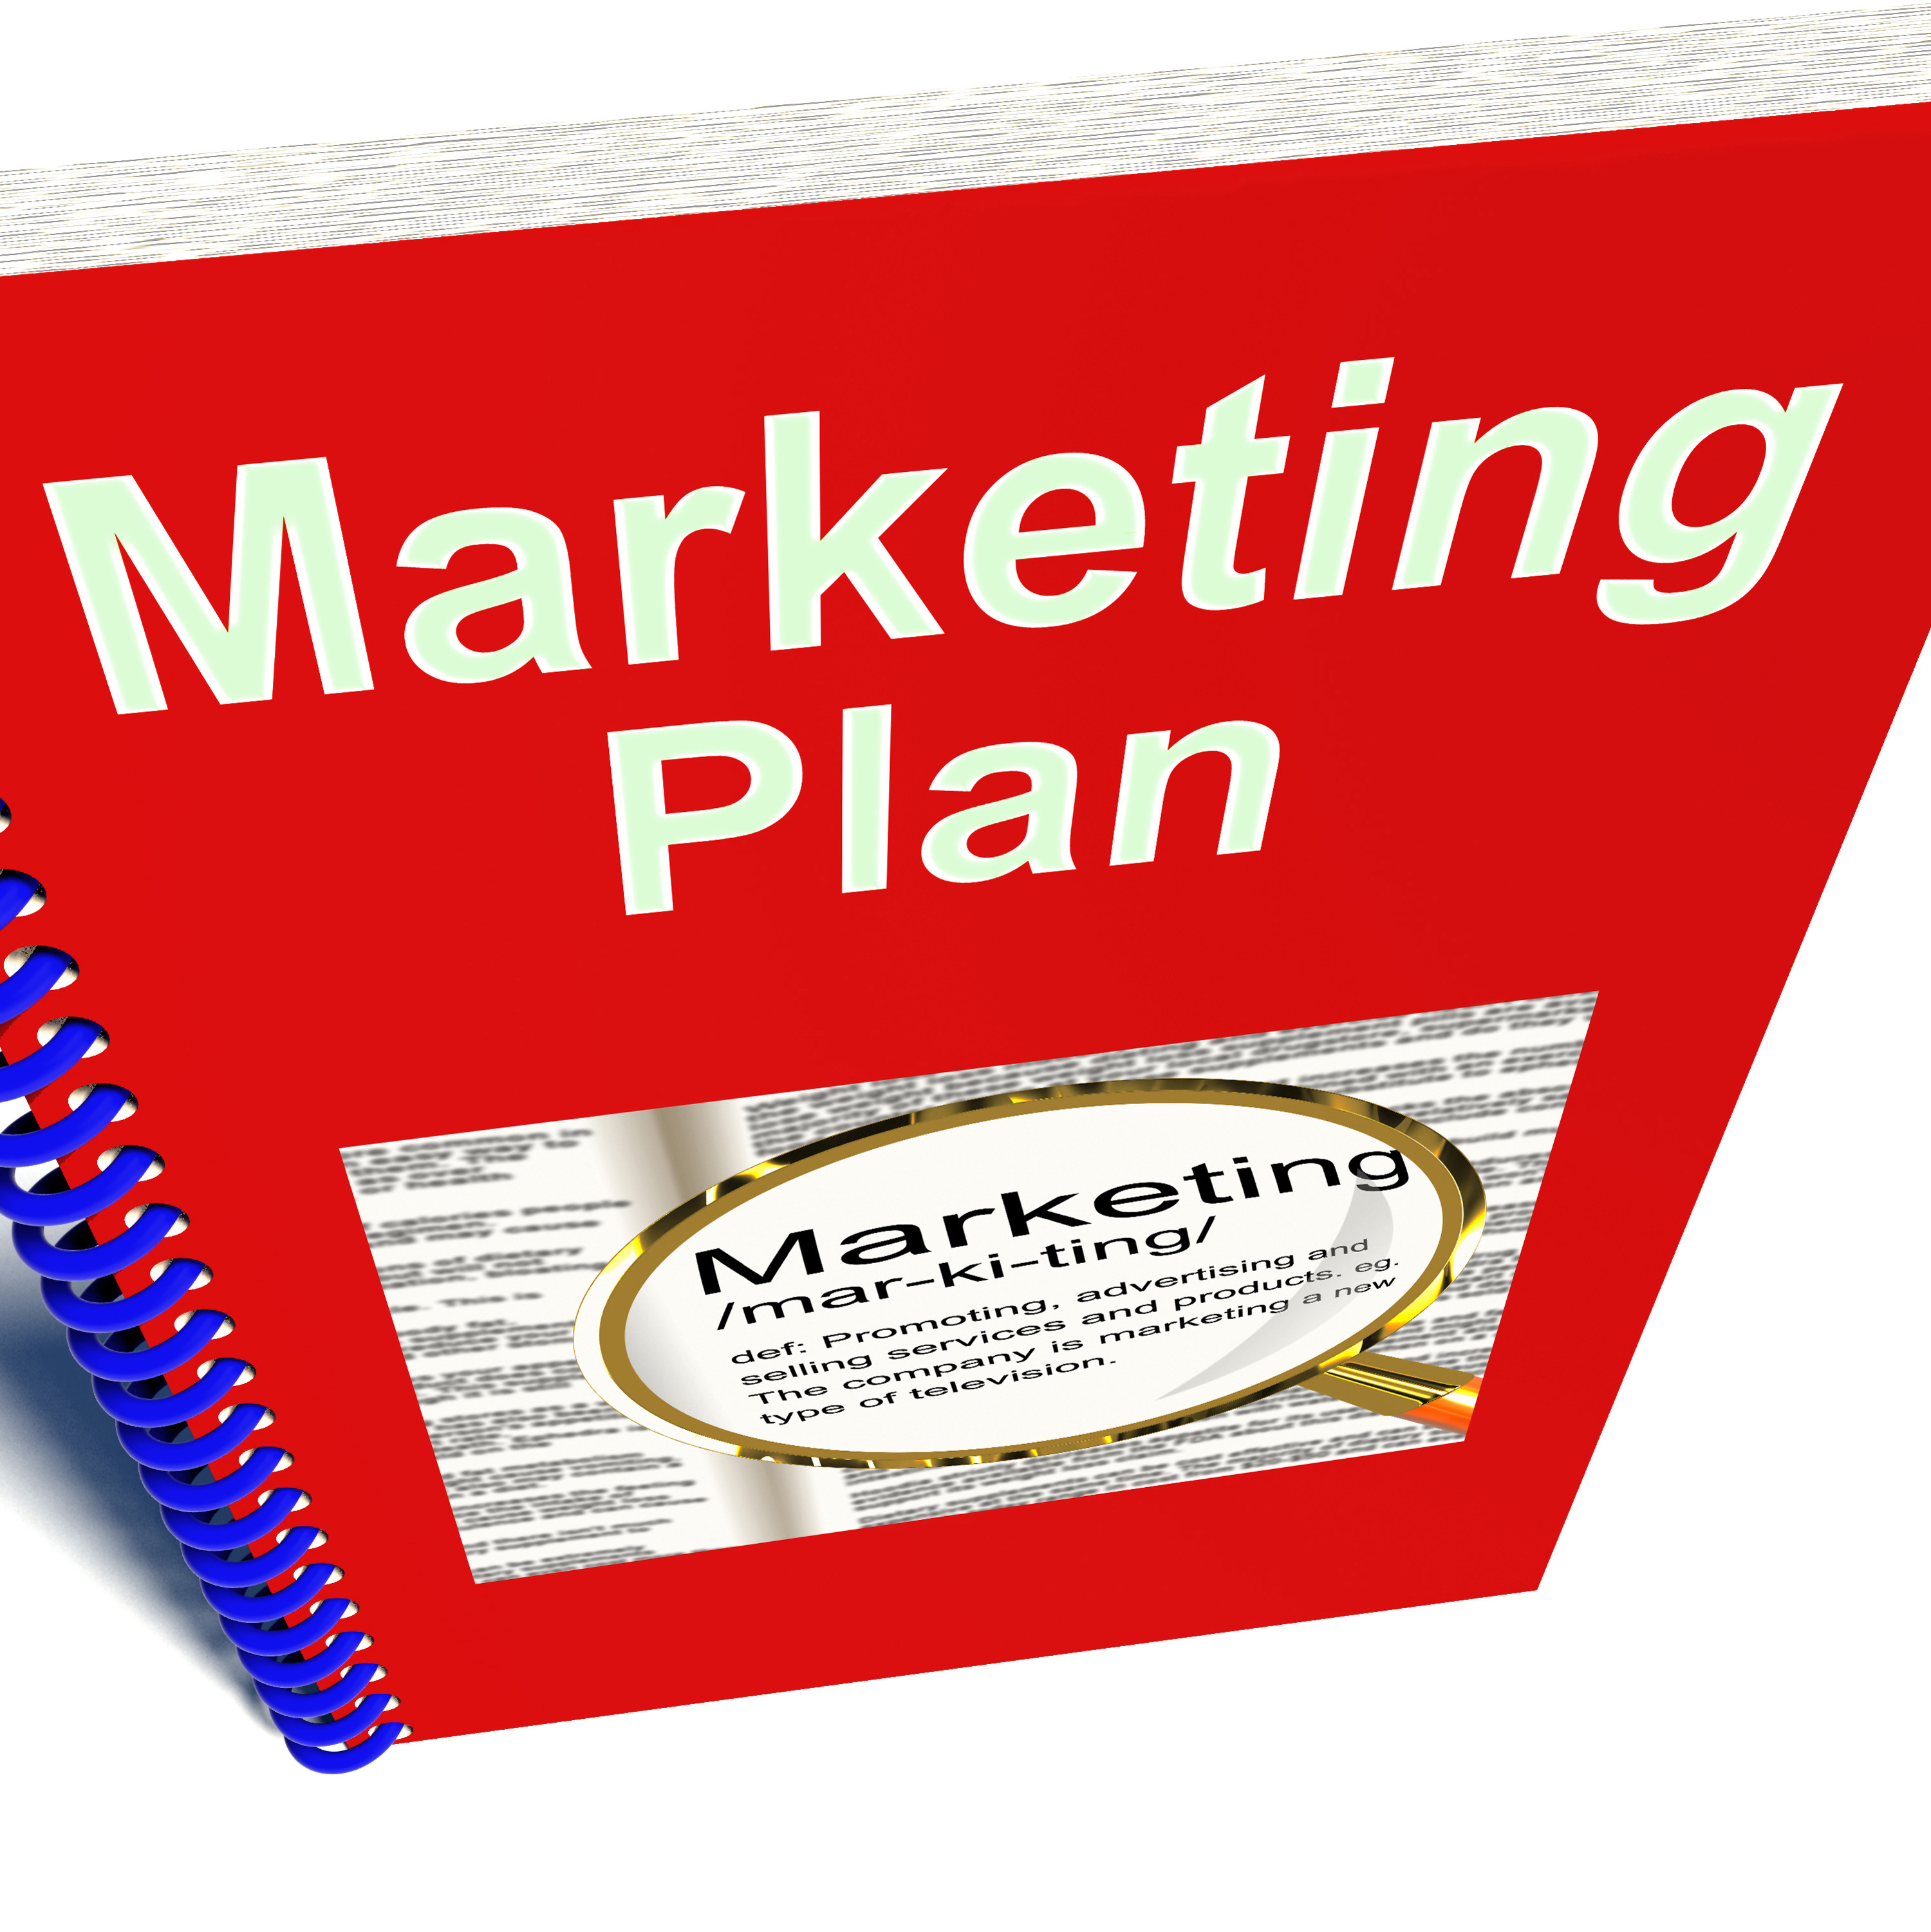 Marketing Plan Book Shows Promotion Strategy Report